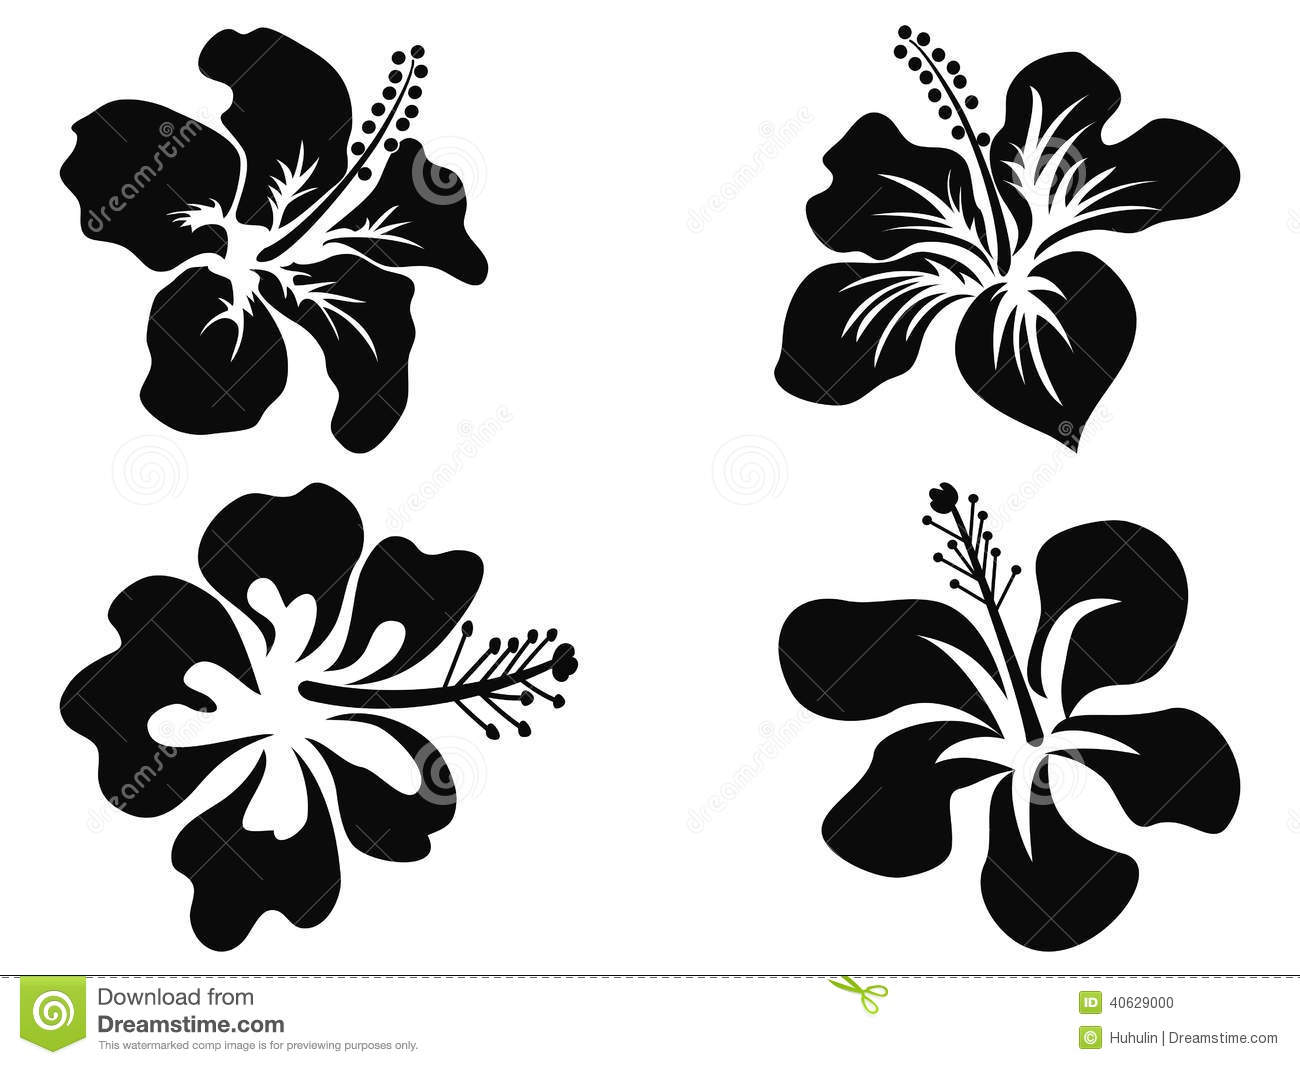 Hibiscus vector silhouettes stock vector illustration of fabric leaf 40629000 - Hibiscus images download ...